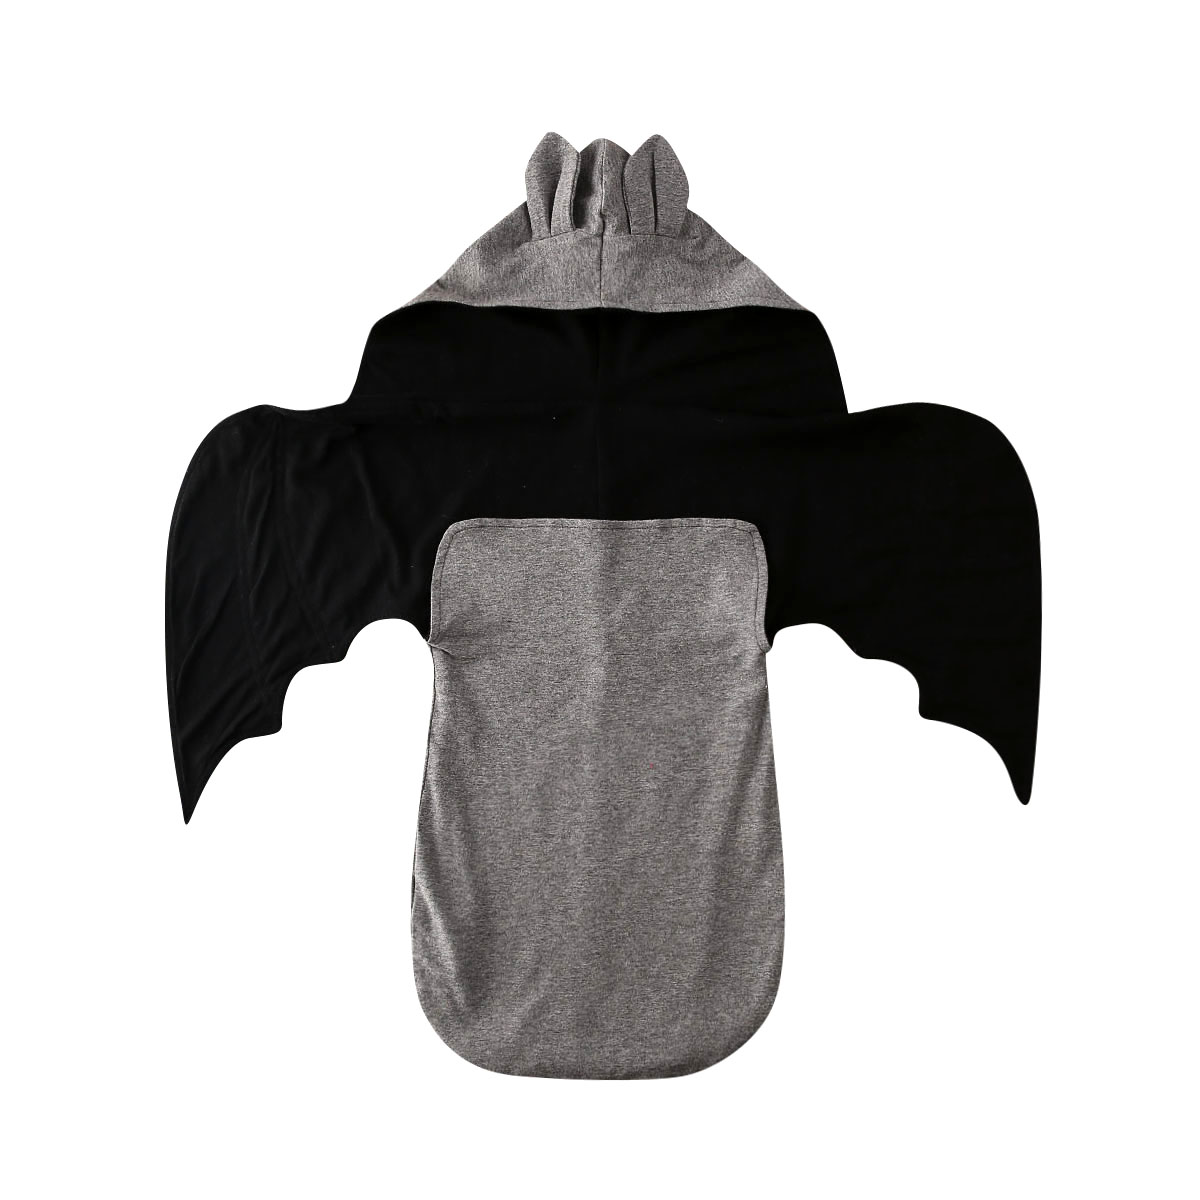 Baby Bedding Infant Baby Kid Bat Shape Cotton Swaddle Blanket Wrap Wings Hooded Sleeping Bag 0-6M